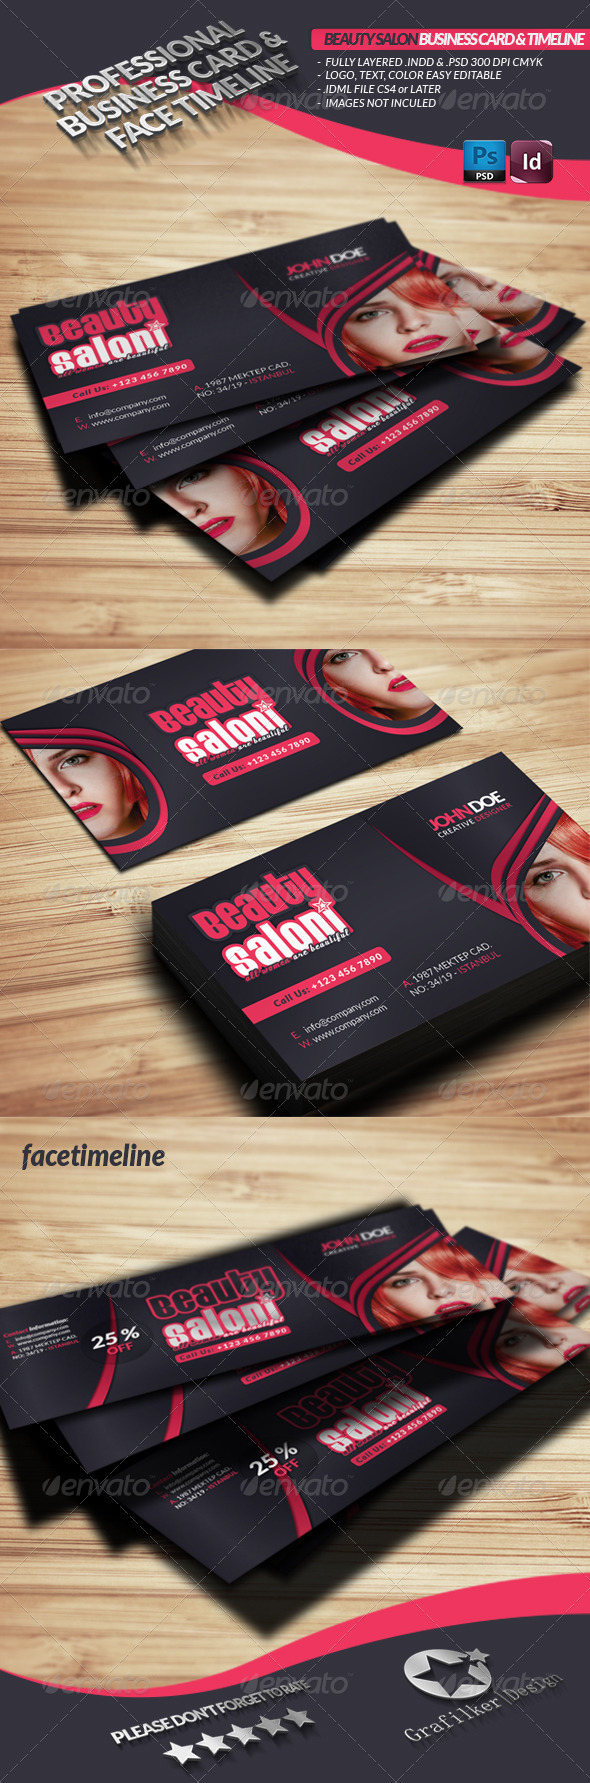 Beauty Salon Business Card Face Timeline - Industry Specific Business Cards